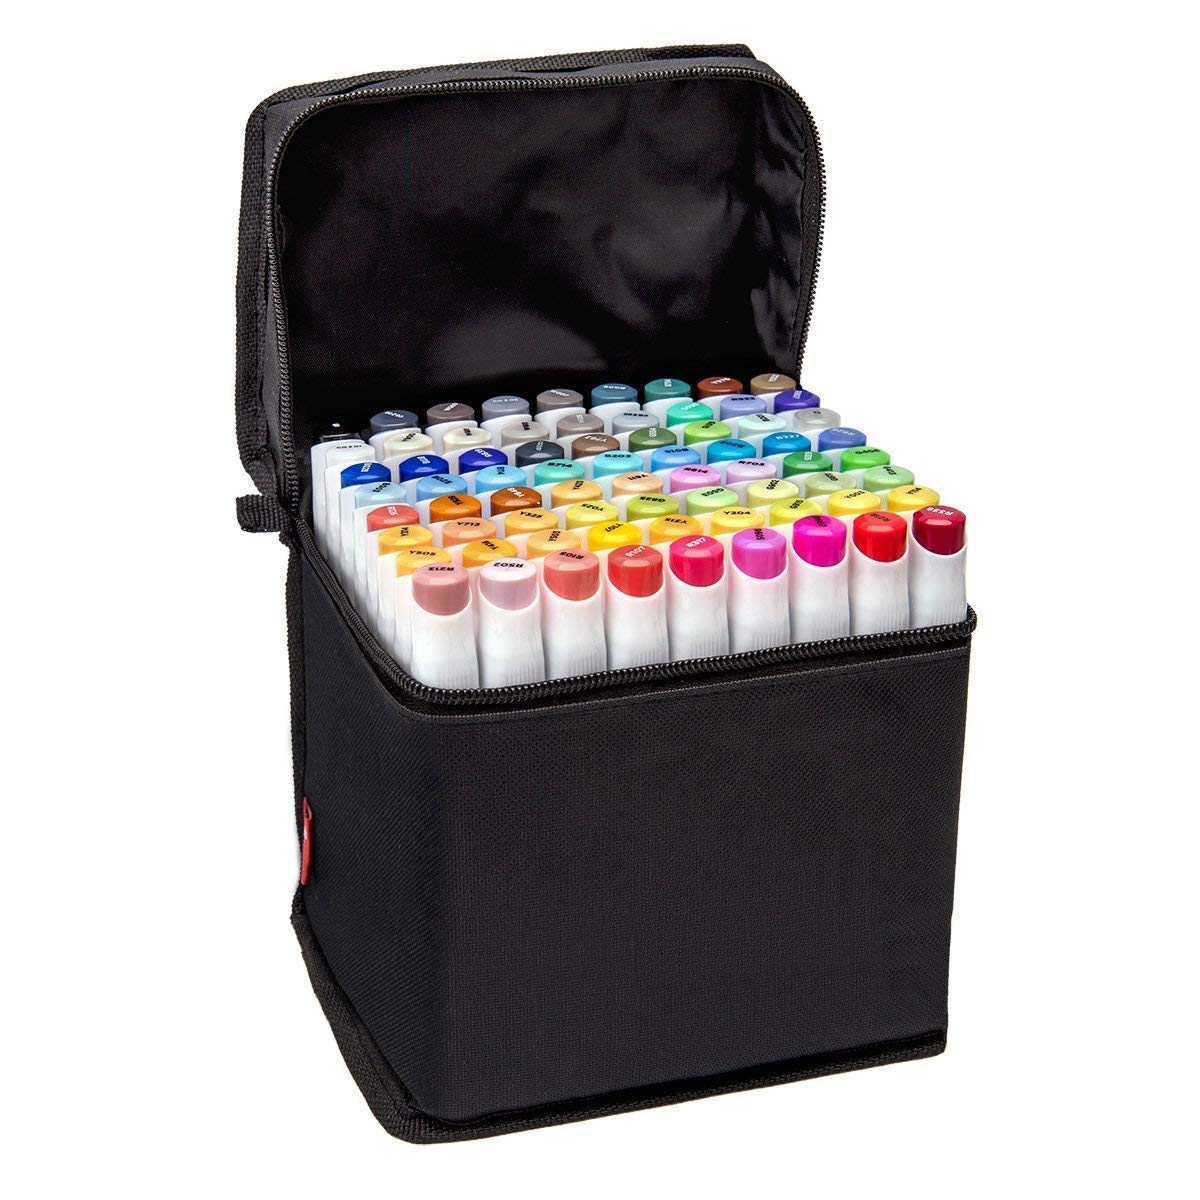 Bianyo Classic Series Dual Tip Art Markers with Travel Case Set of 72, Alcohol-based by Bianyo (Image #1)